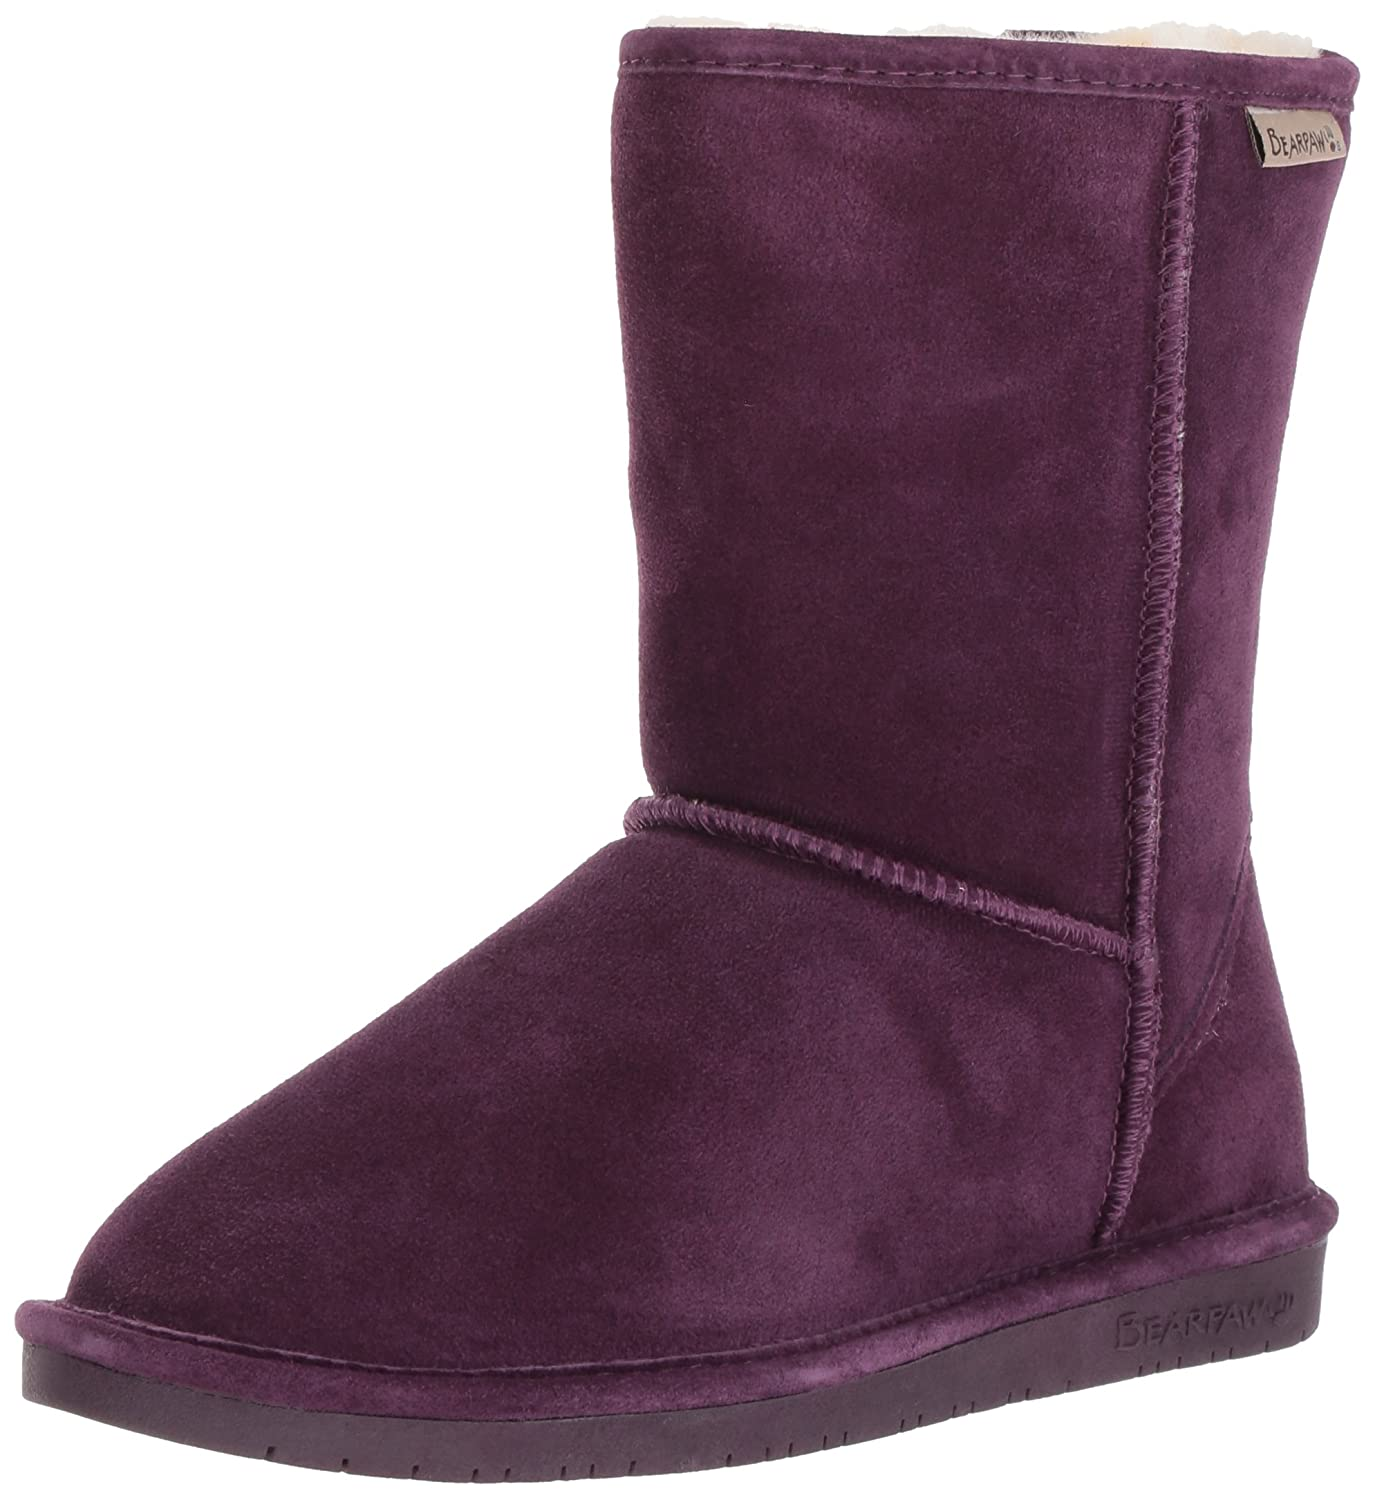 BEARPAW Women's Emma Short Snow Boot B0781F4VDD 42 M EU|Plum